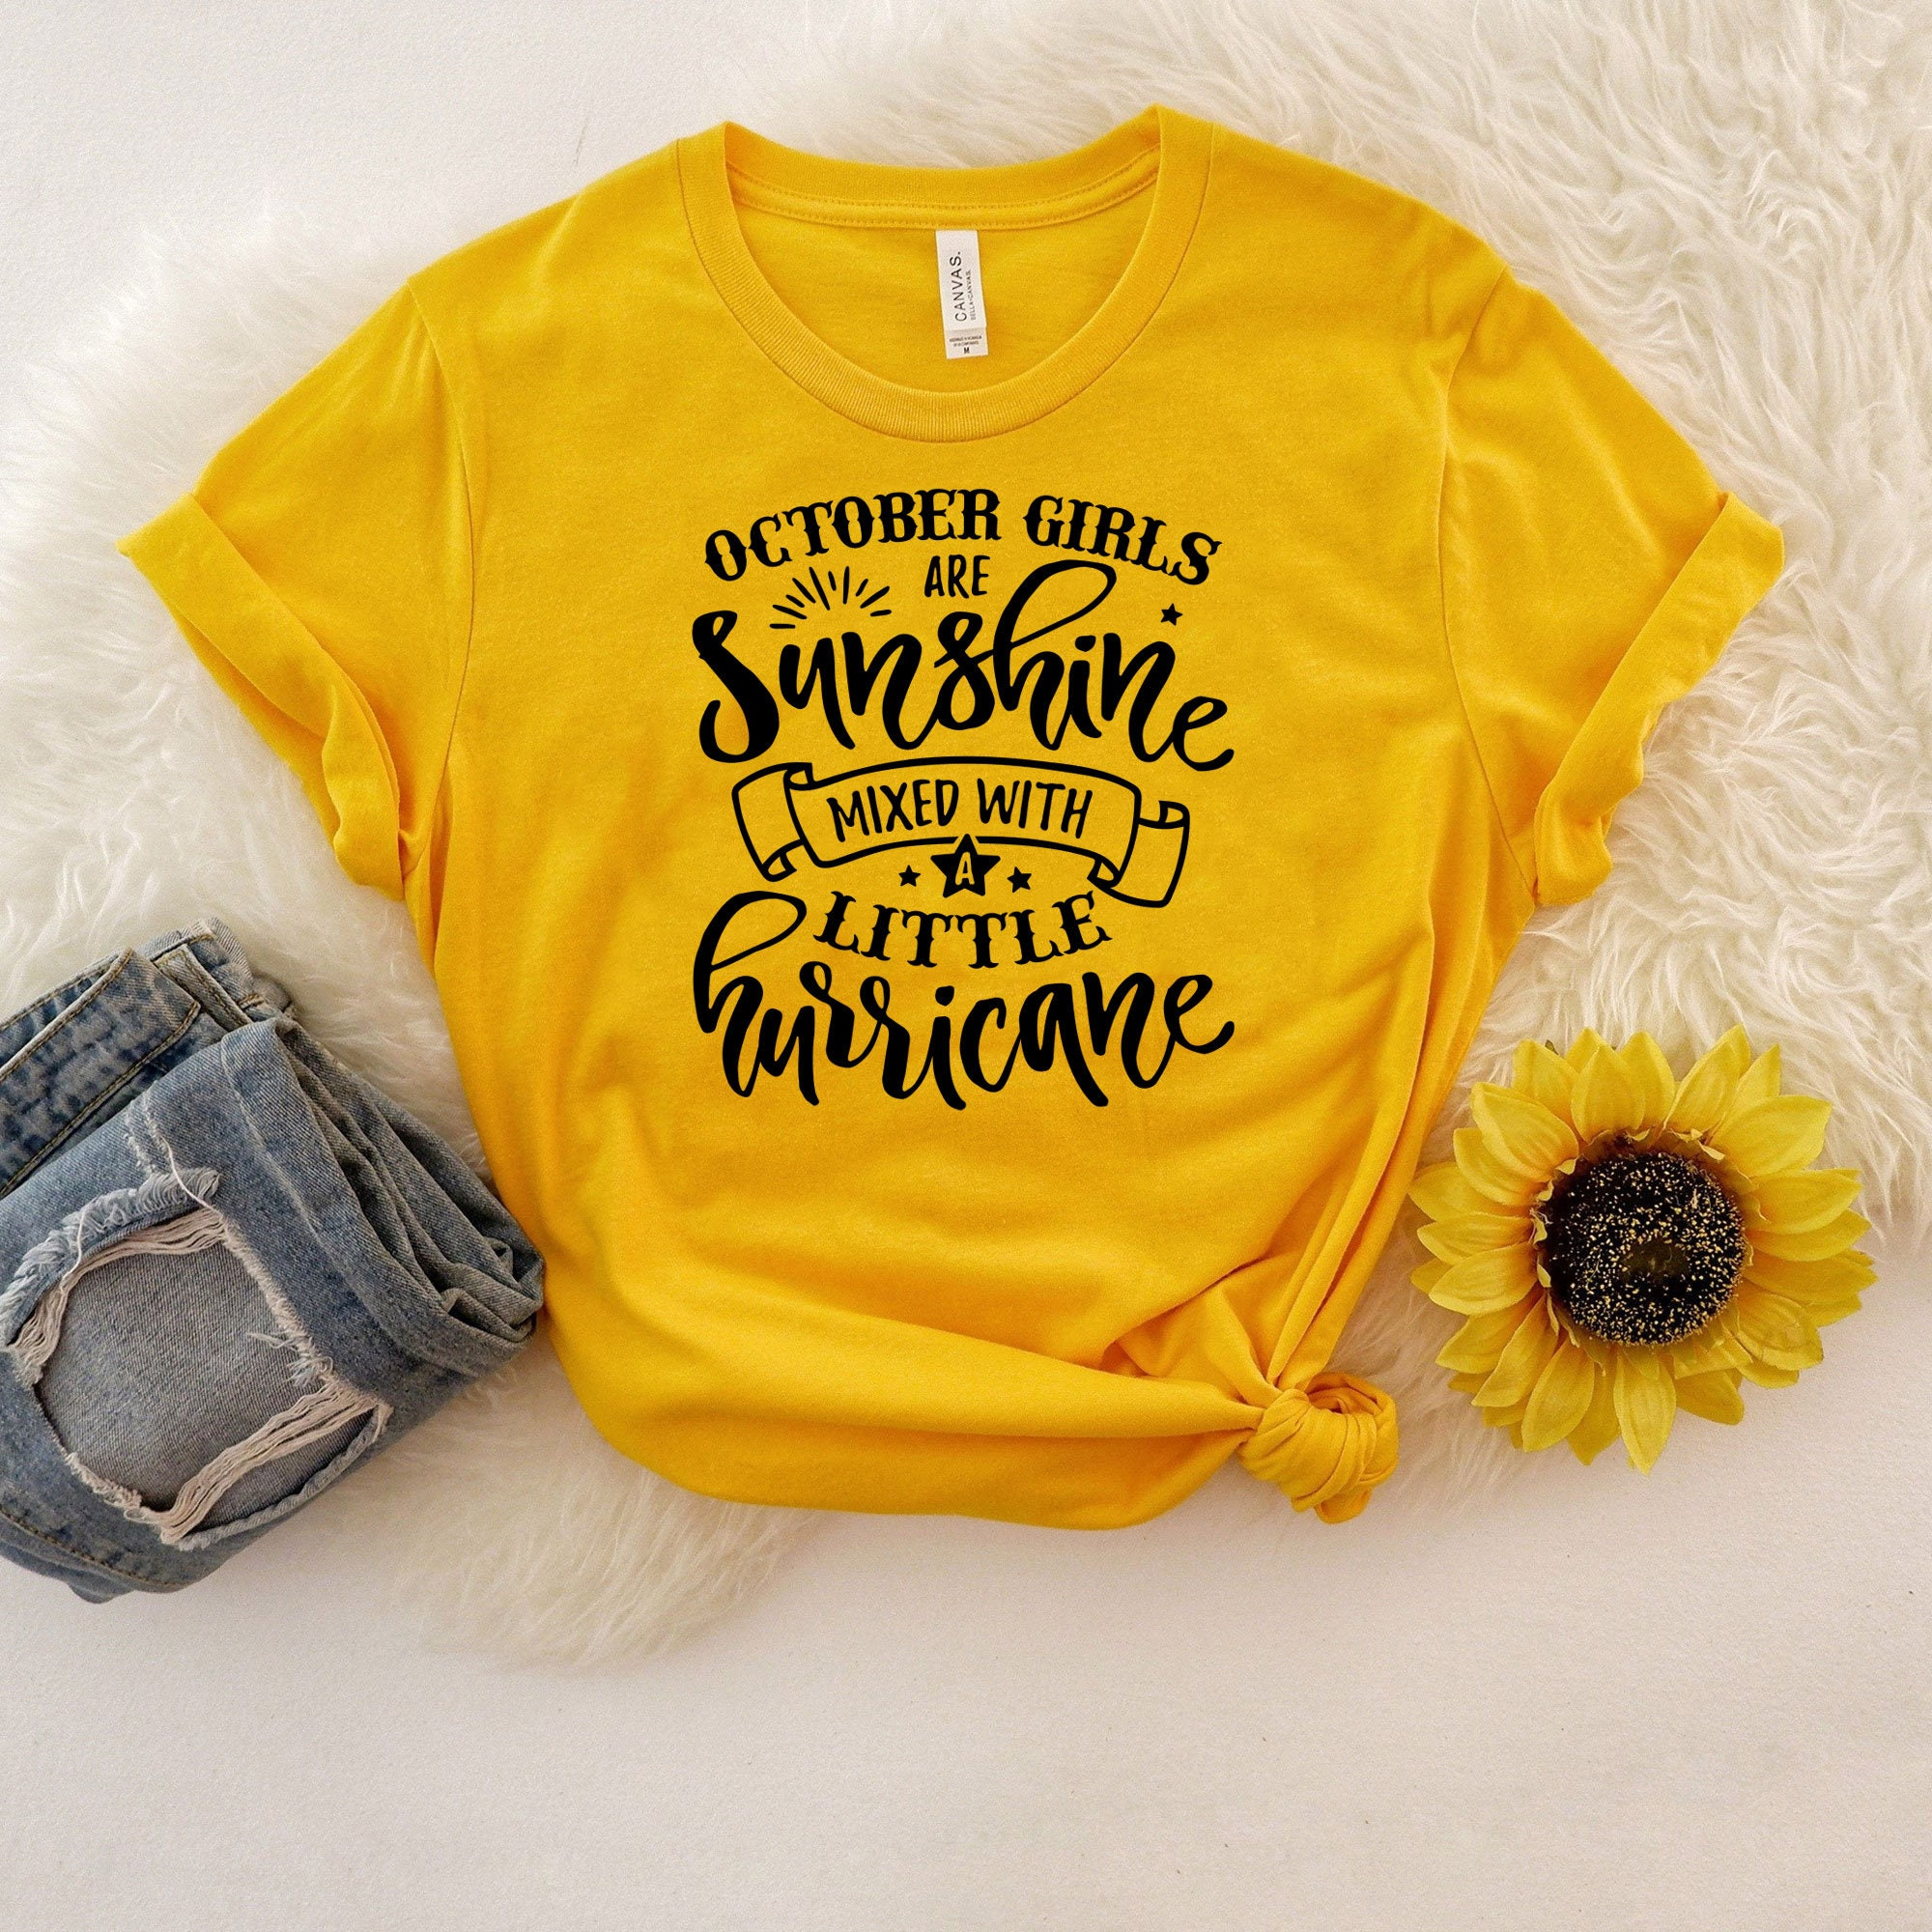 October Girls Are Sunshine Mixed With A Little Hurricane, October Birthday Shirt, October Girl Shirt, Funny Birthday Shirt, Birthday Gifts